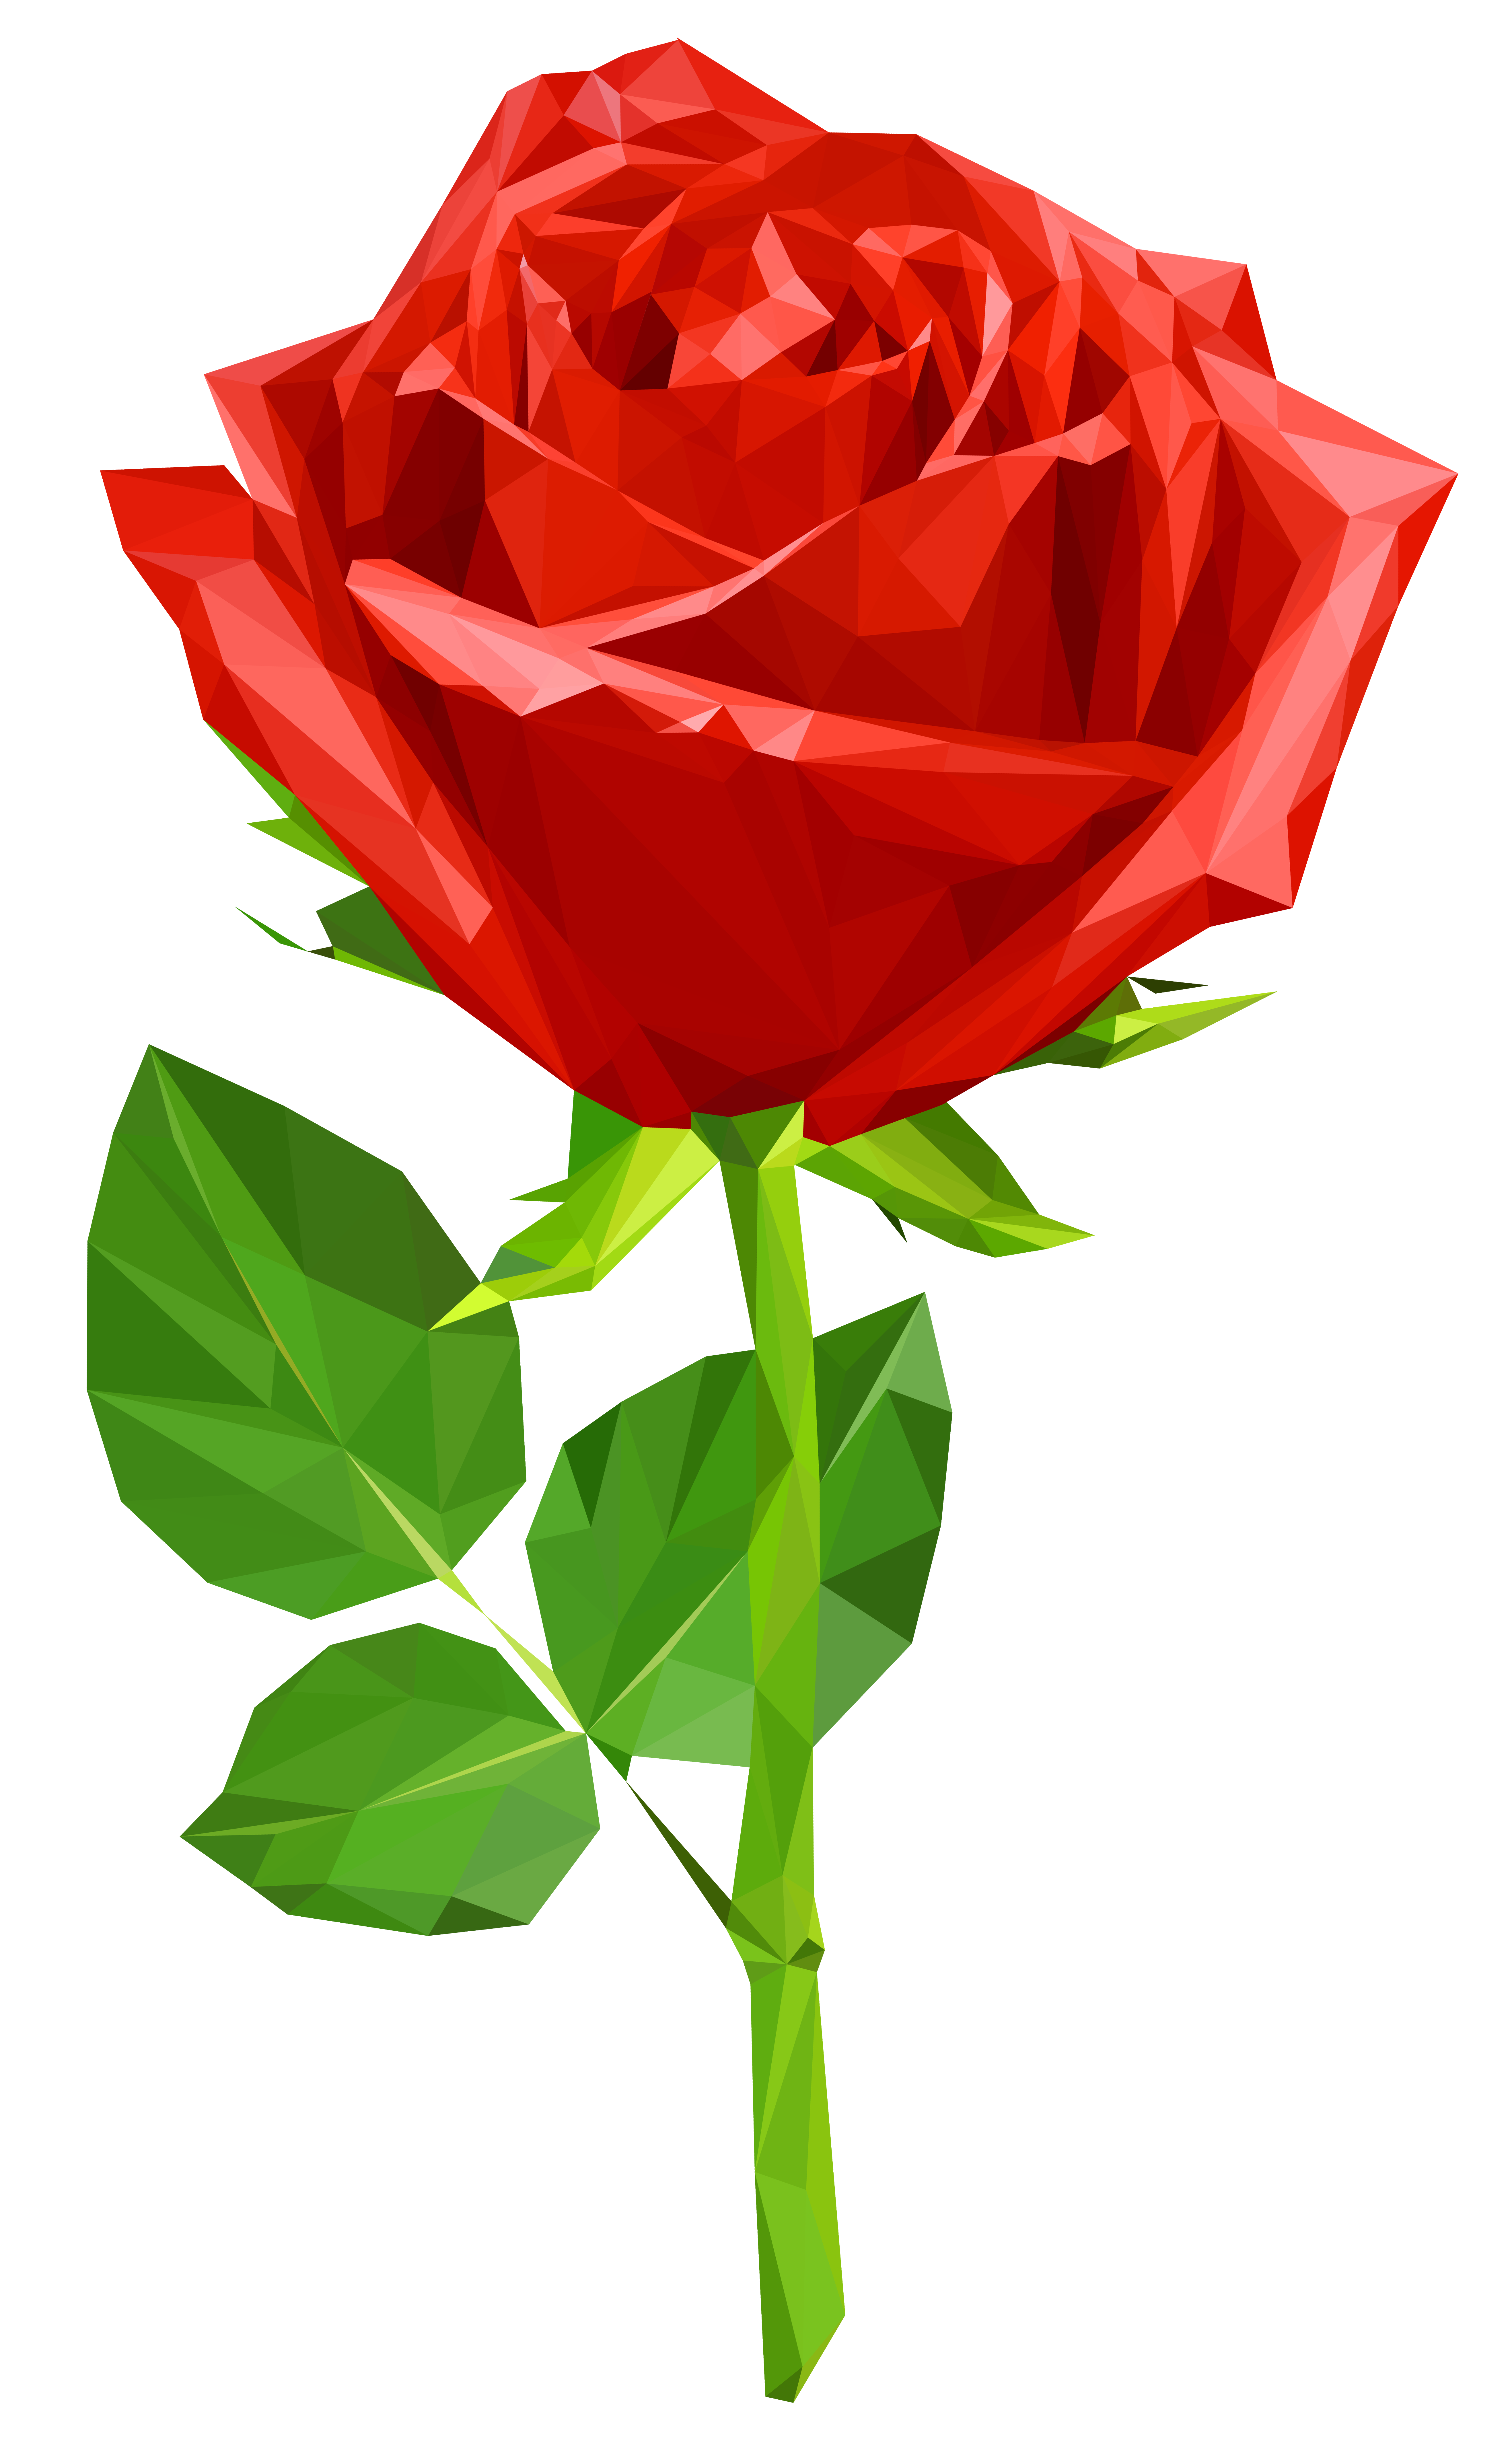 Crystal clipart green crystal. Red rose transparent png